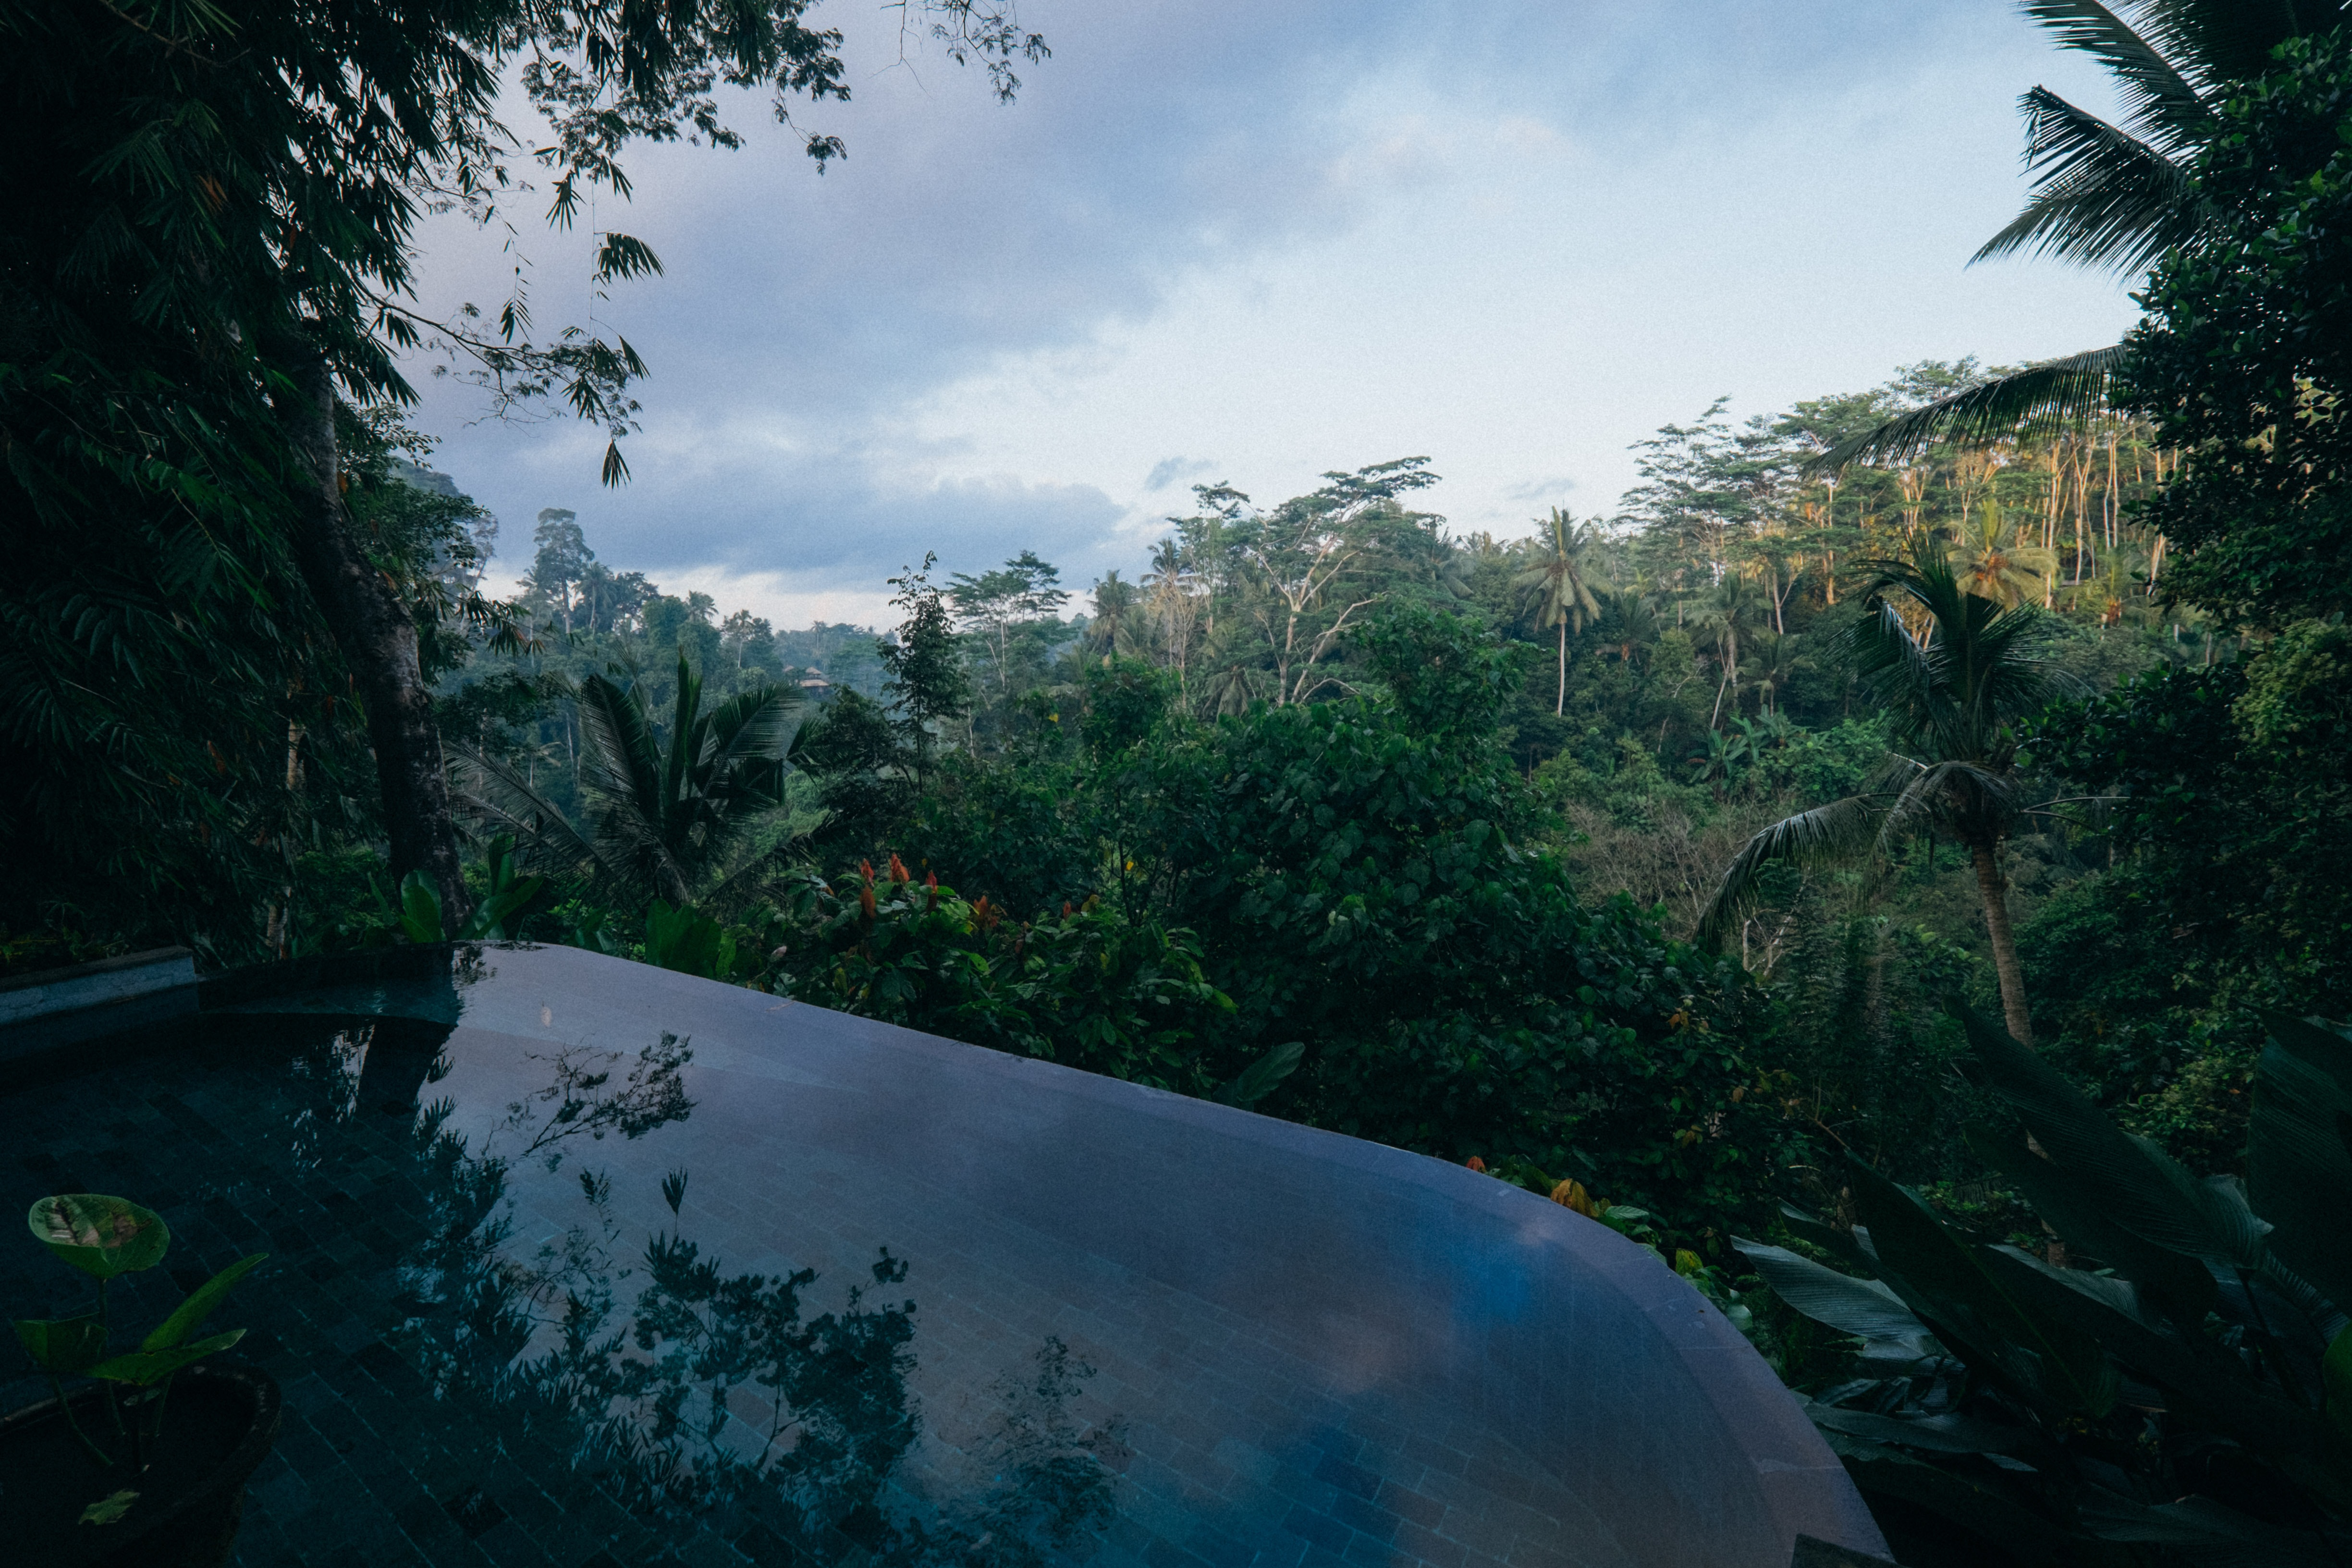 Serene jungle view from a relaxing spa